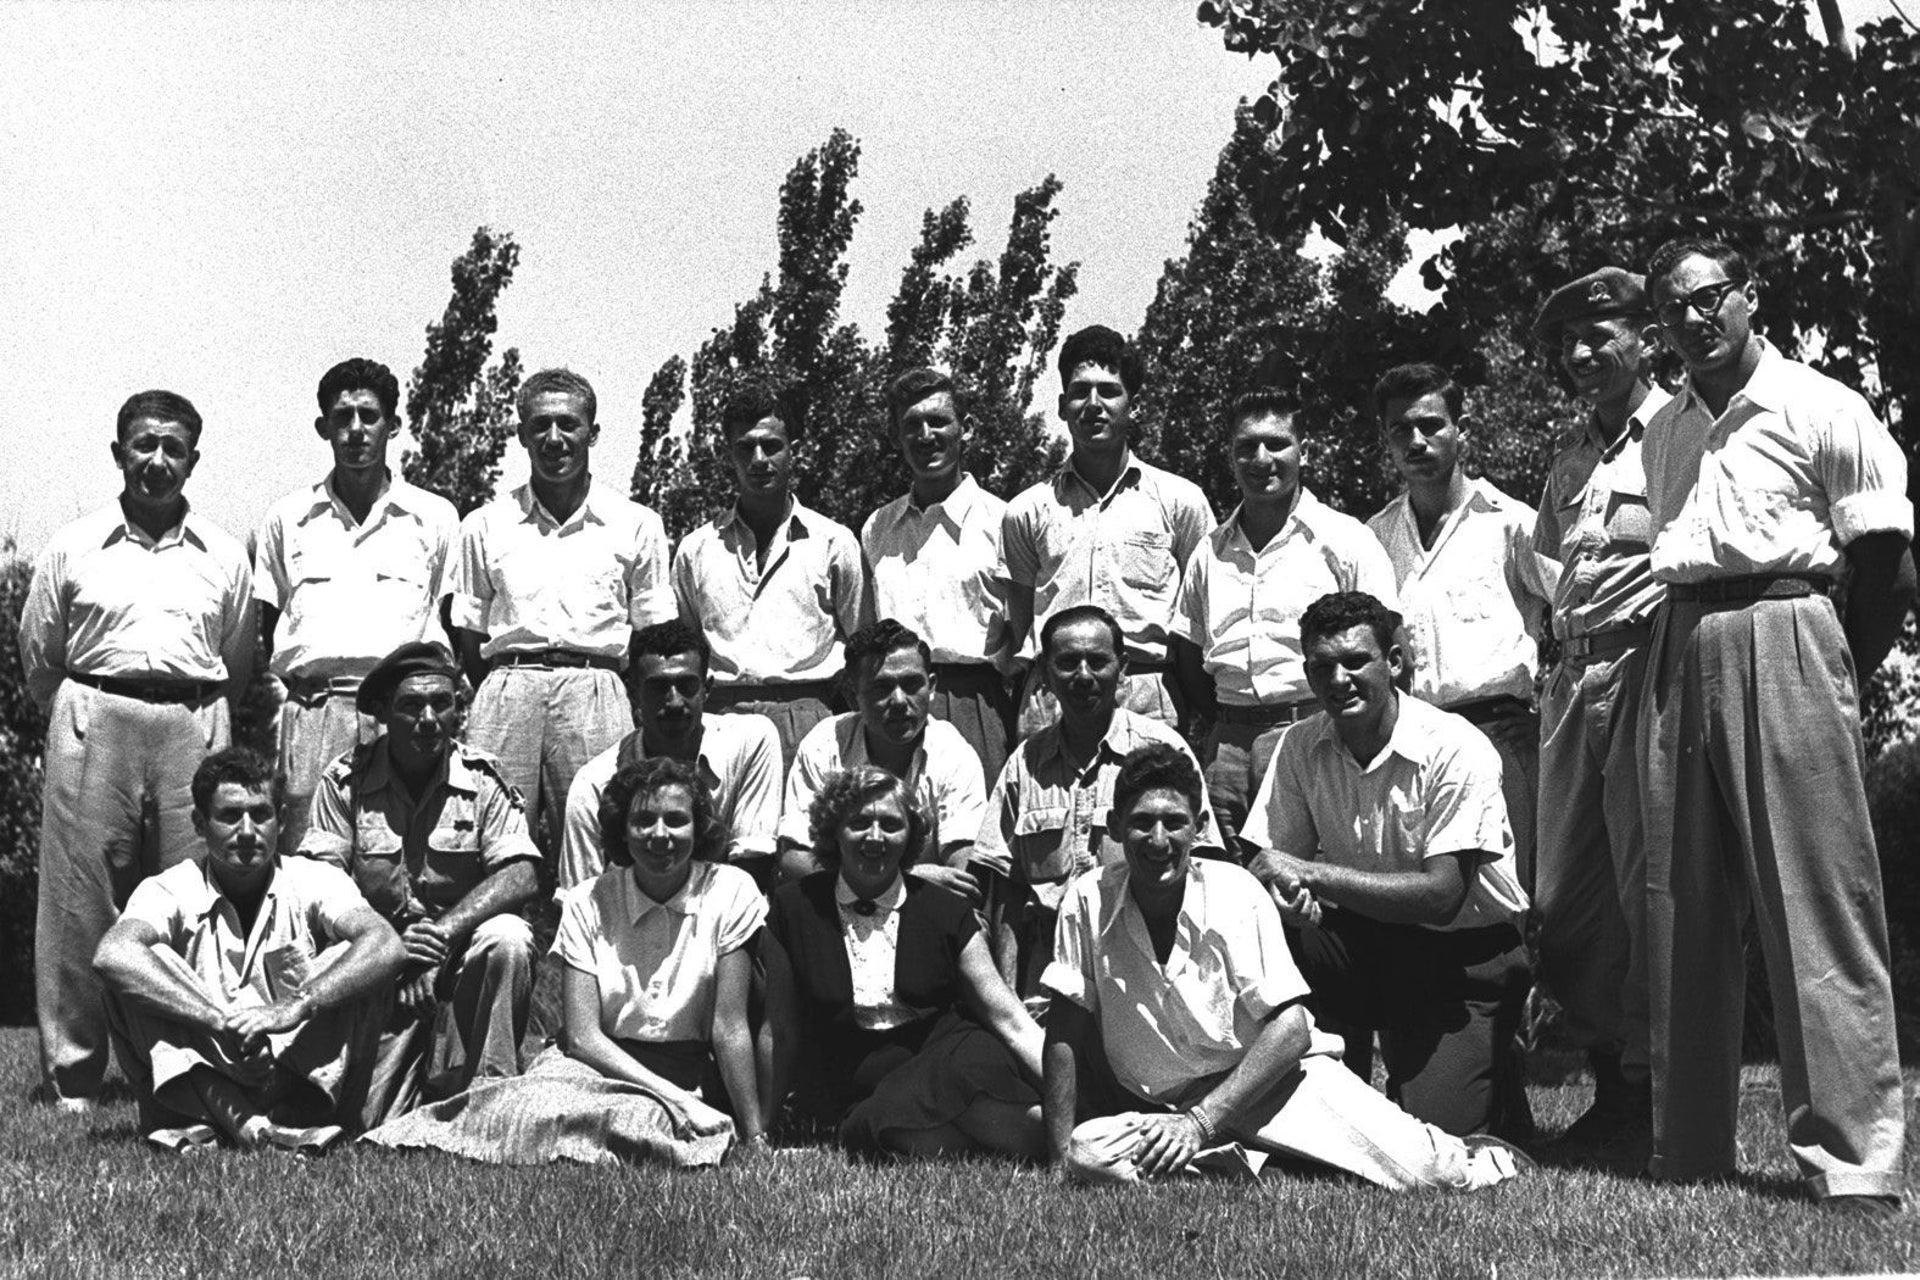 Members of Israeli Olympic team in Helsinki, 1952.